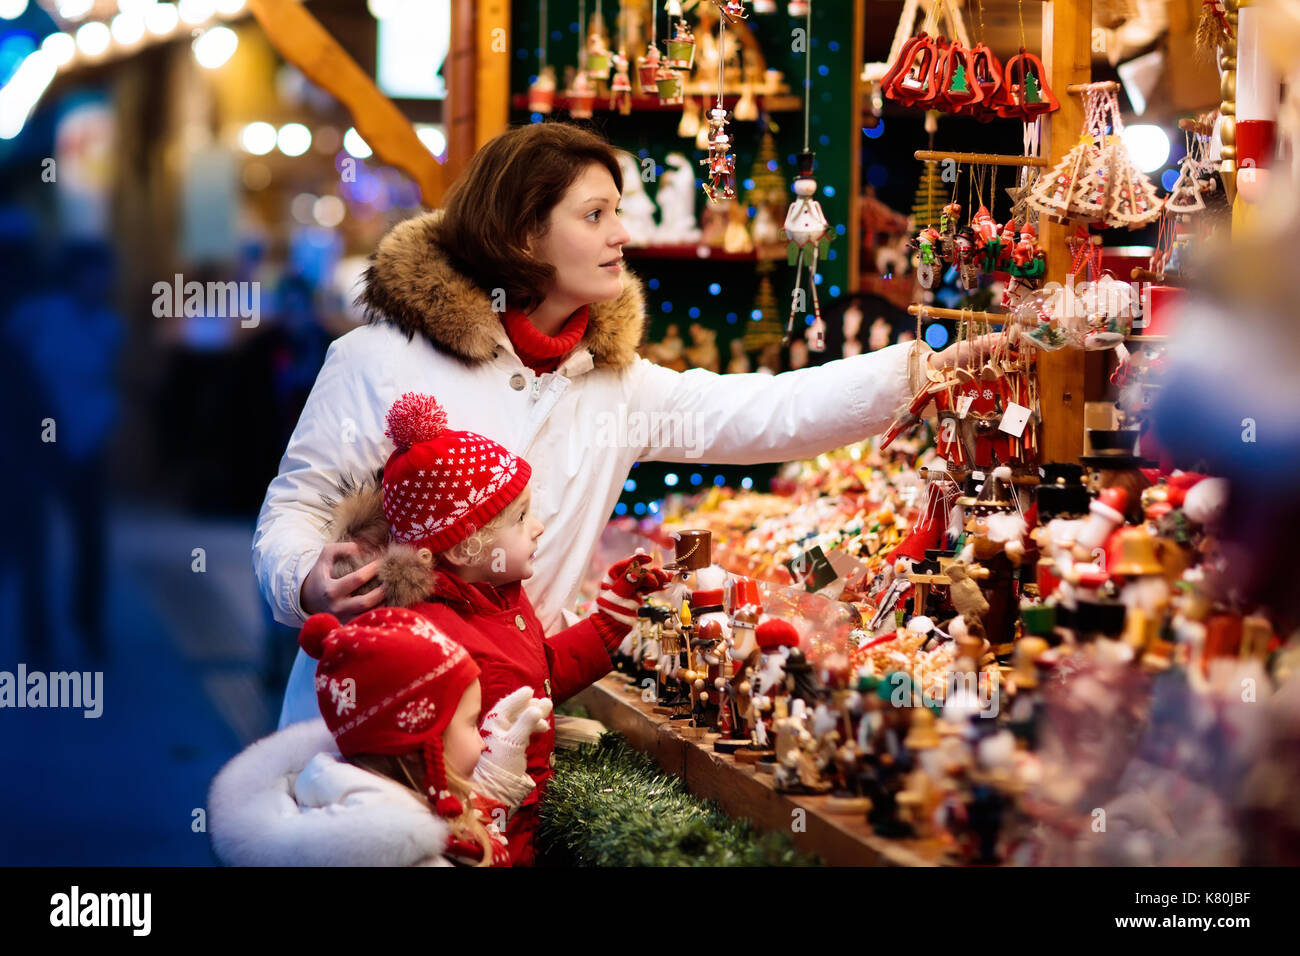 Lovely Traditional German Christmas Tree Ornaments Part - 12: Mother And Child In Warm Hat Watching Handmade Glass Christmas Tree  Ornaments At Traditional German Xmas Street Market. Family With Kids  Shopping For